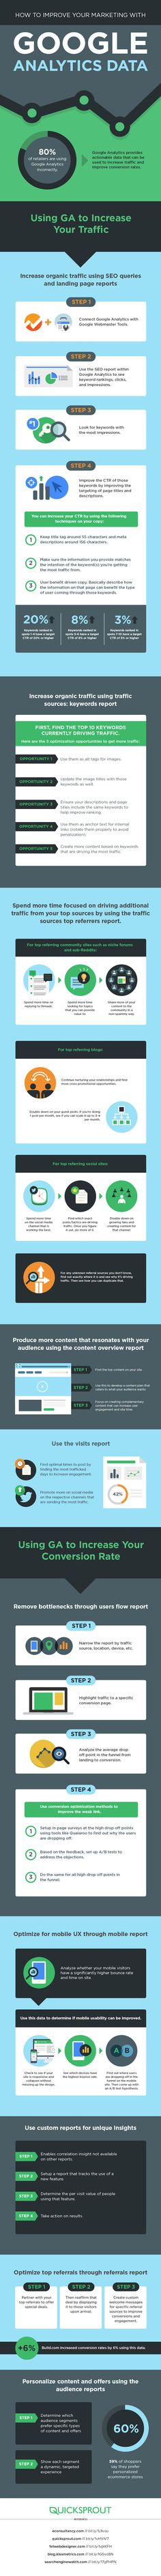 How with the Help of #Google #Analytics Data Make Your #Marketing #Strategies Work #Infographic #TopNetSEO